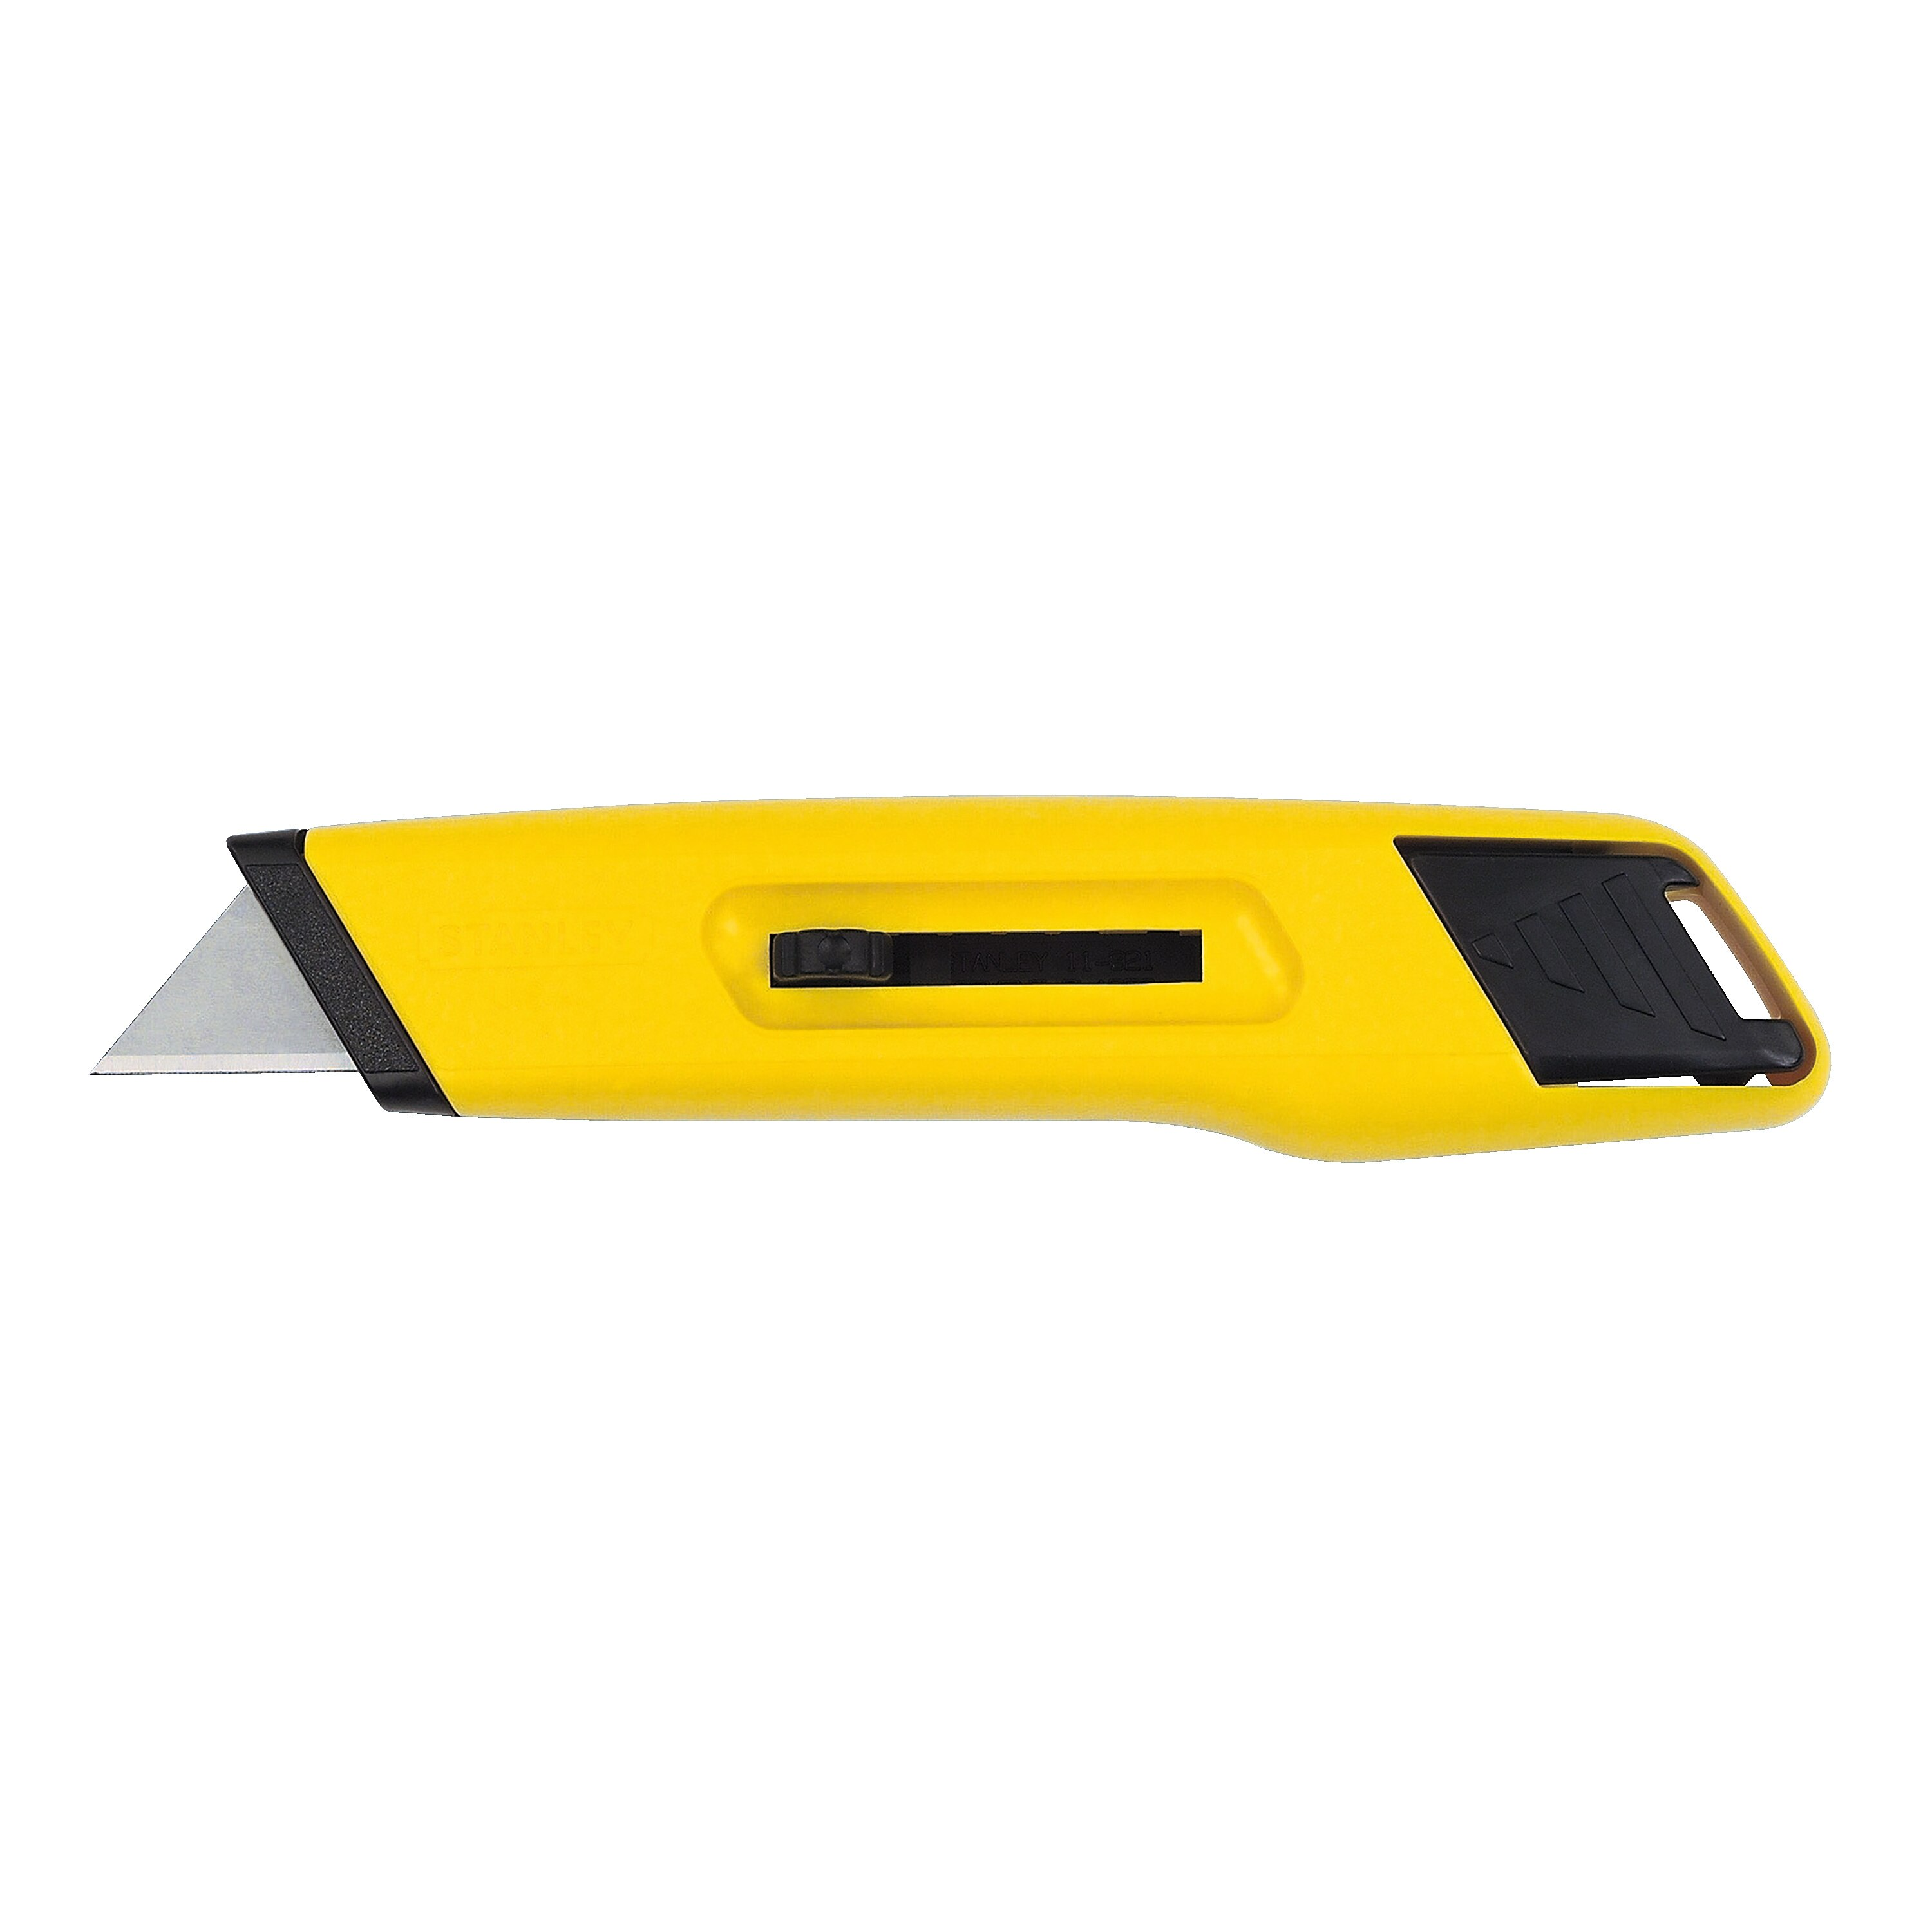 Stanley Tools - 6 in Plastic Retractable Utility Knife - 10-065